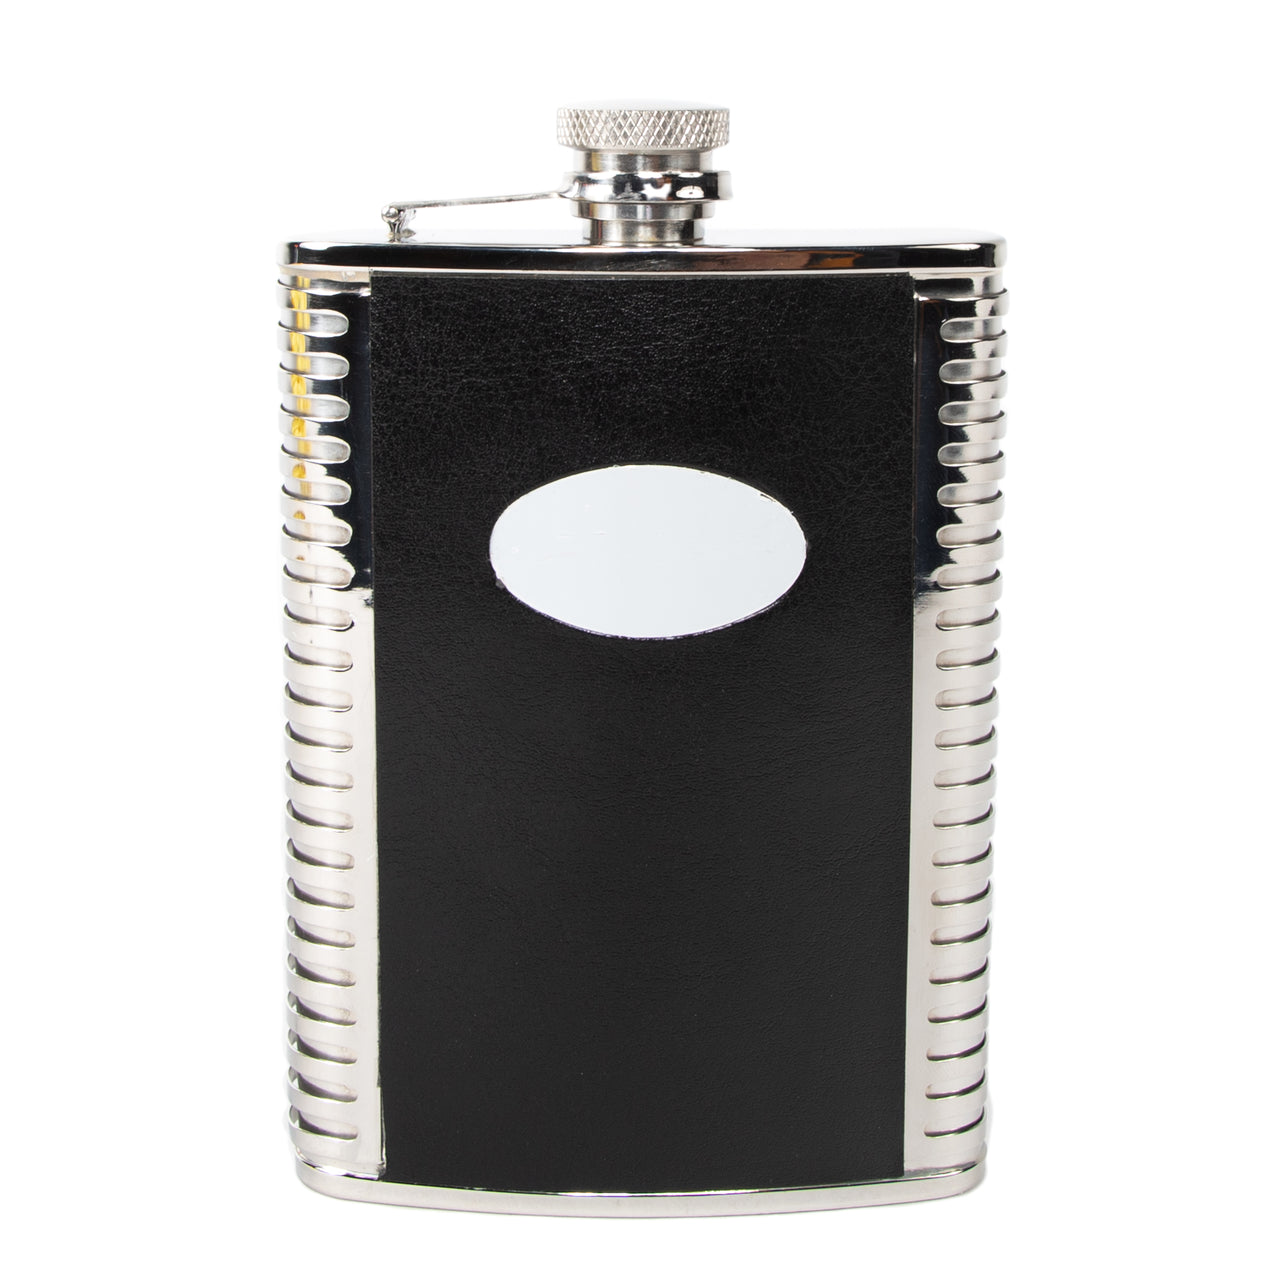 Harley Flask 8 oz.